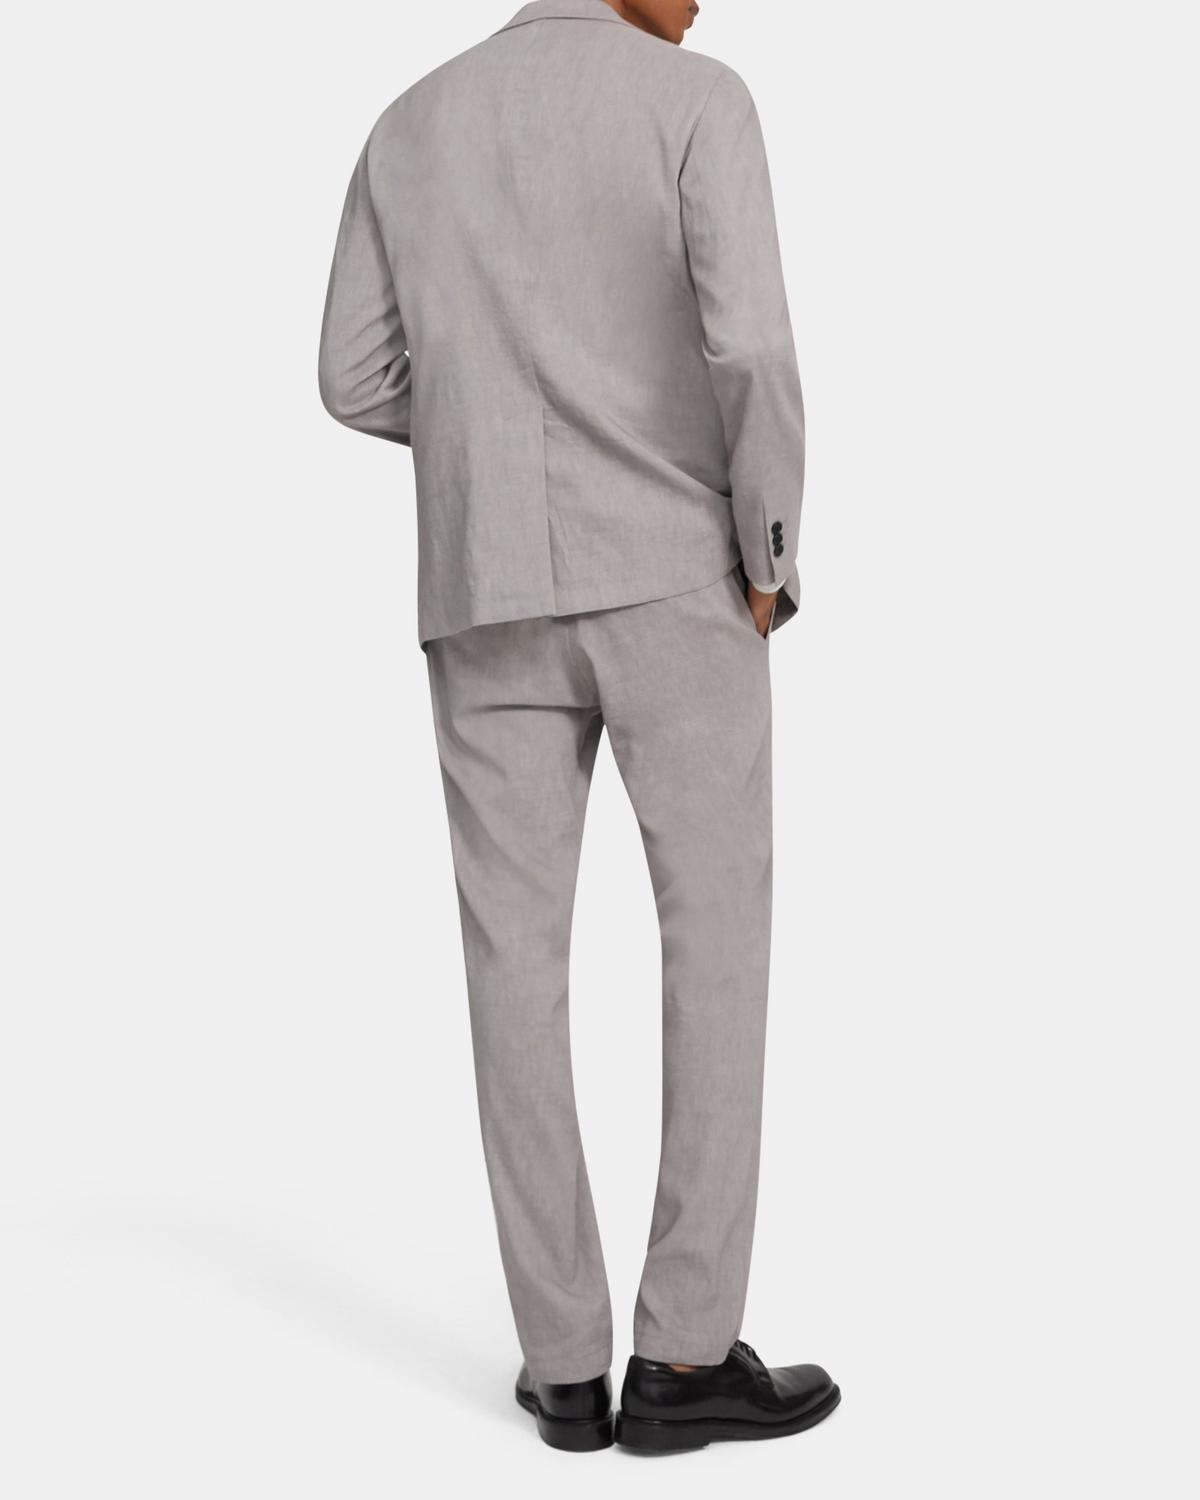 Zaine Pant in Good Linen